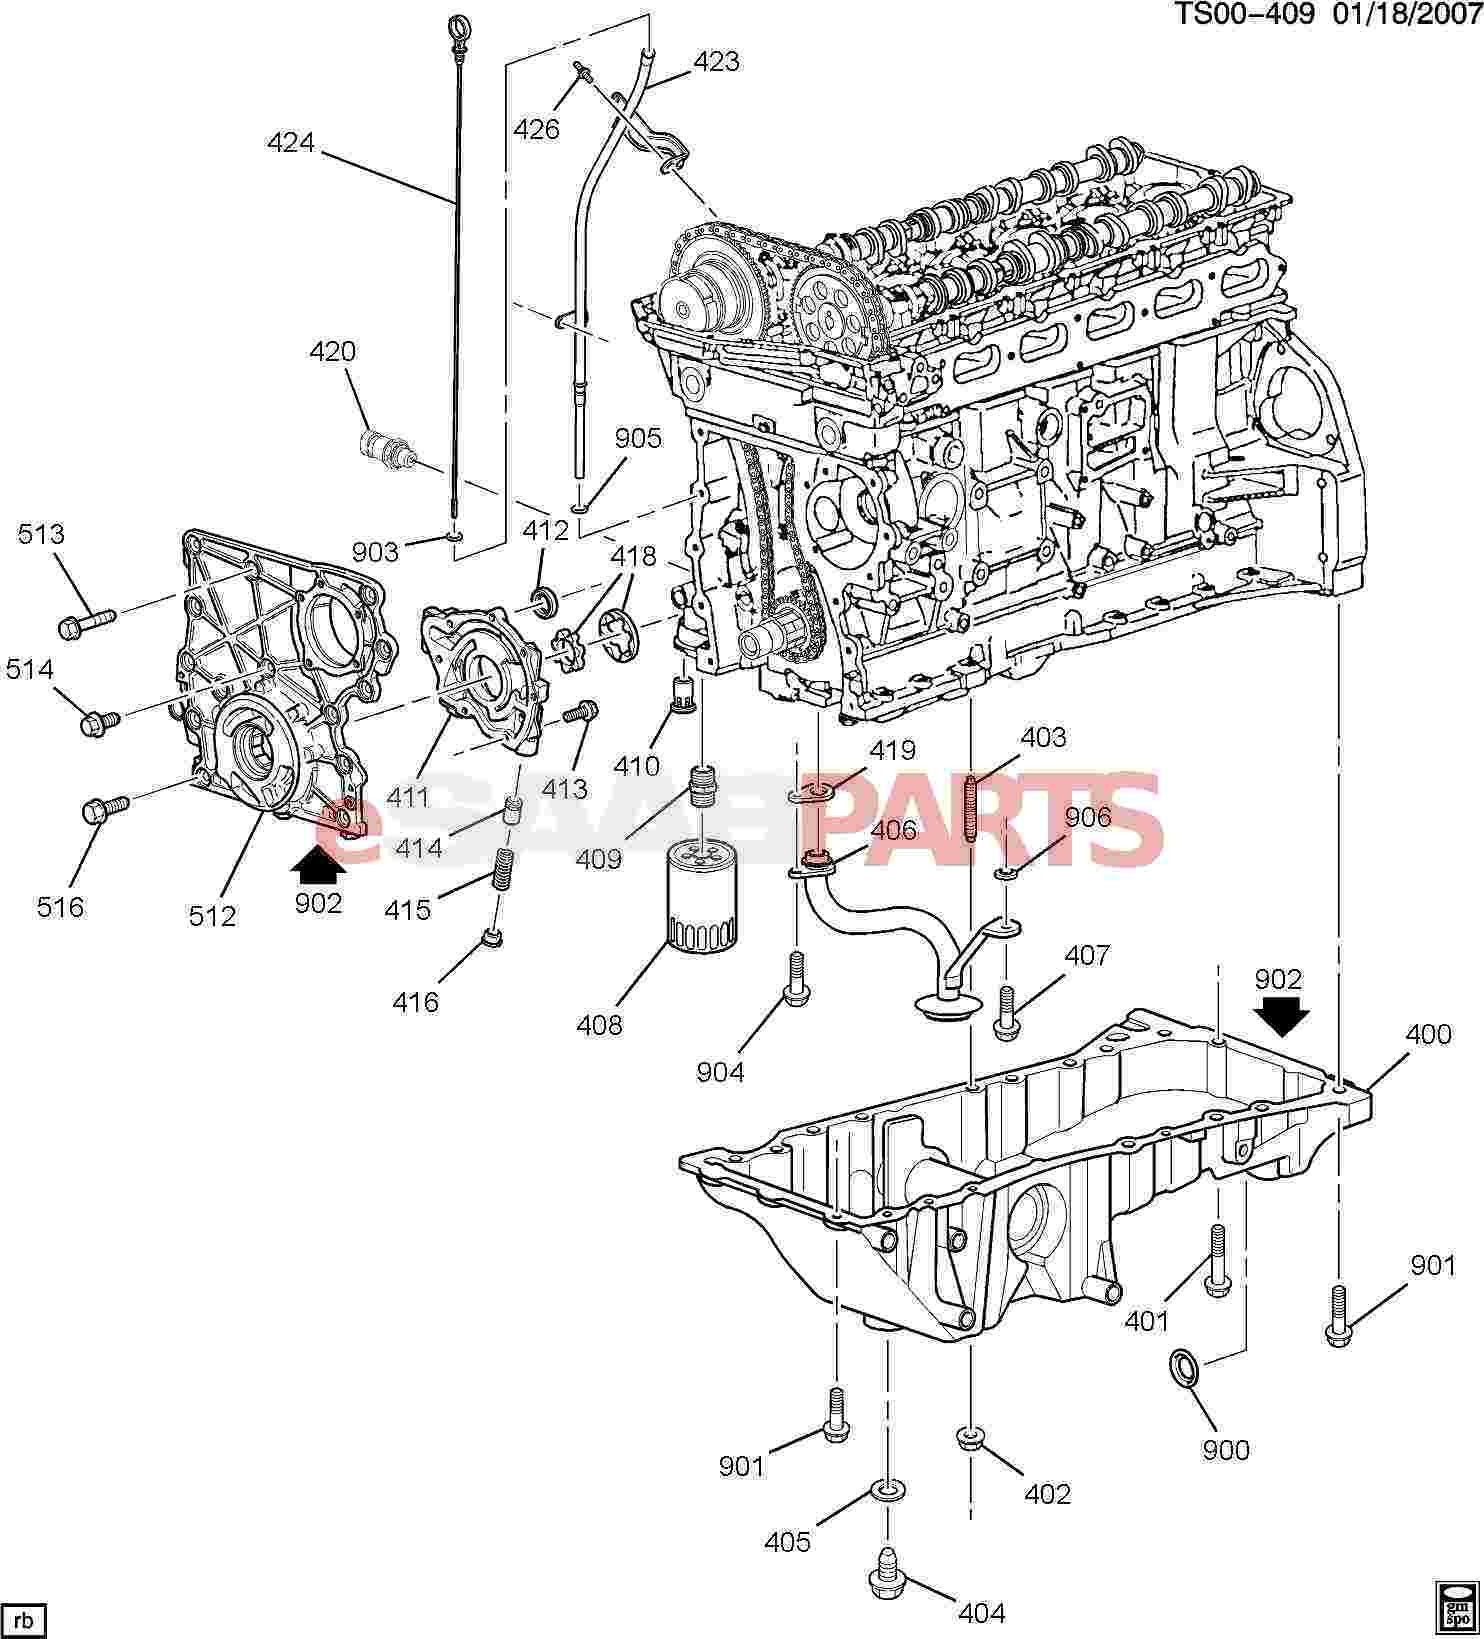 Engine Oil System Diagram Esaabparts Saab 9 7x Engine Parts Engine Internal 4 2s Of Engine Oil System Diagram Wilbo666 1jz Gte Jzz30 soarer Engine Wiring